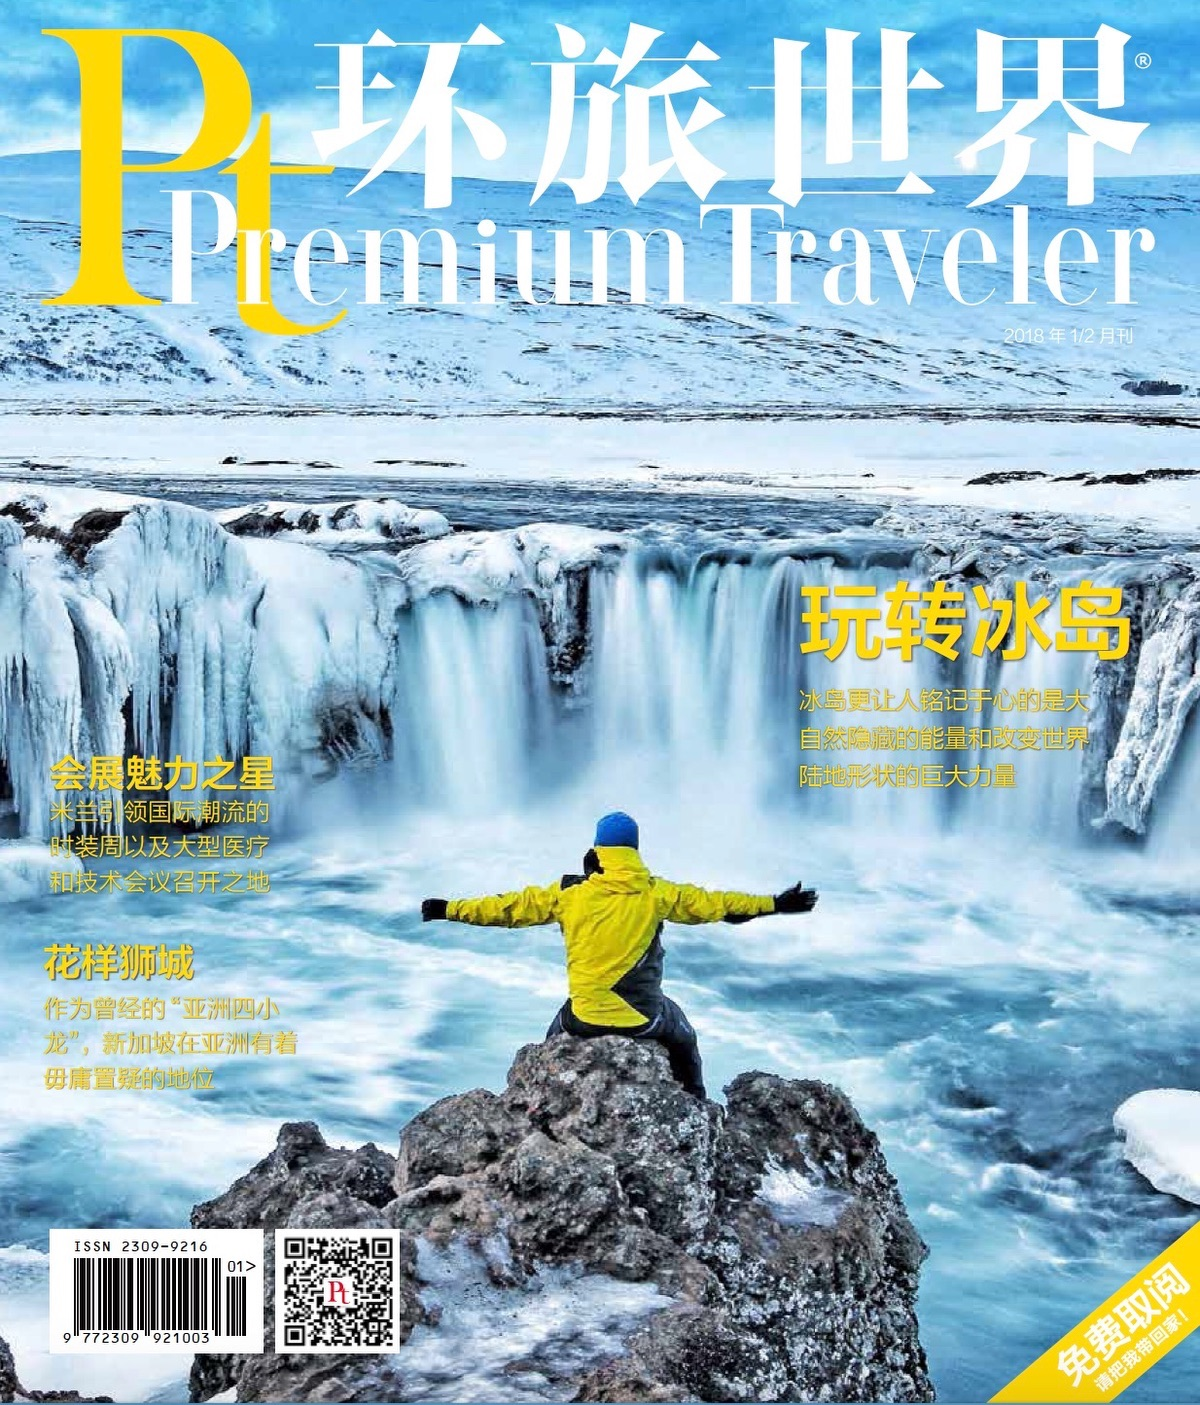 Premium Traveler Jan/Feb 2018 Issue Cover